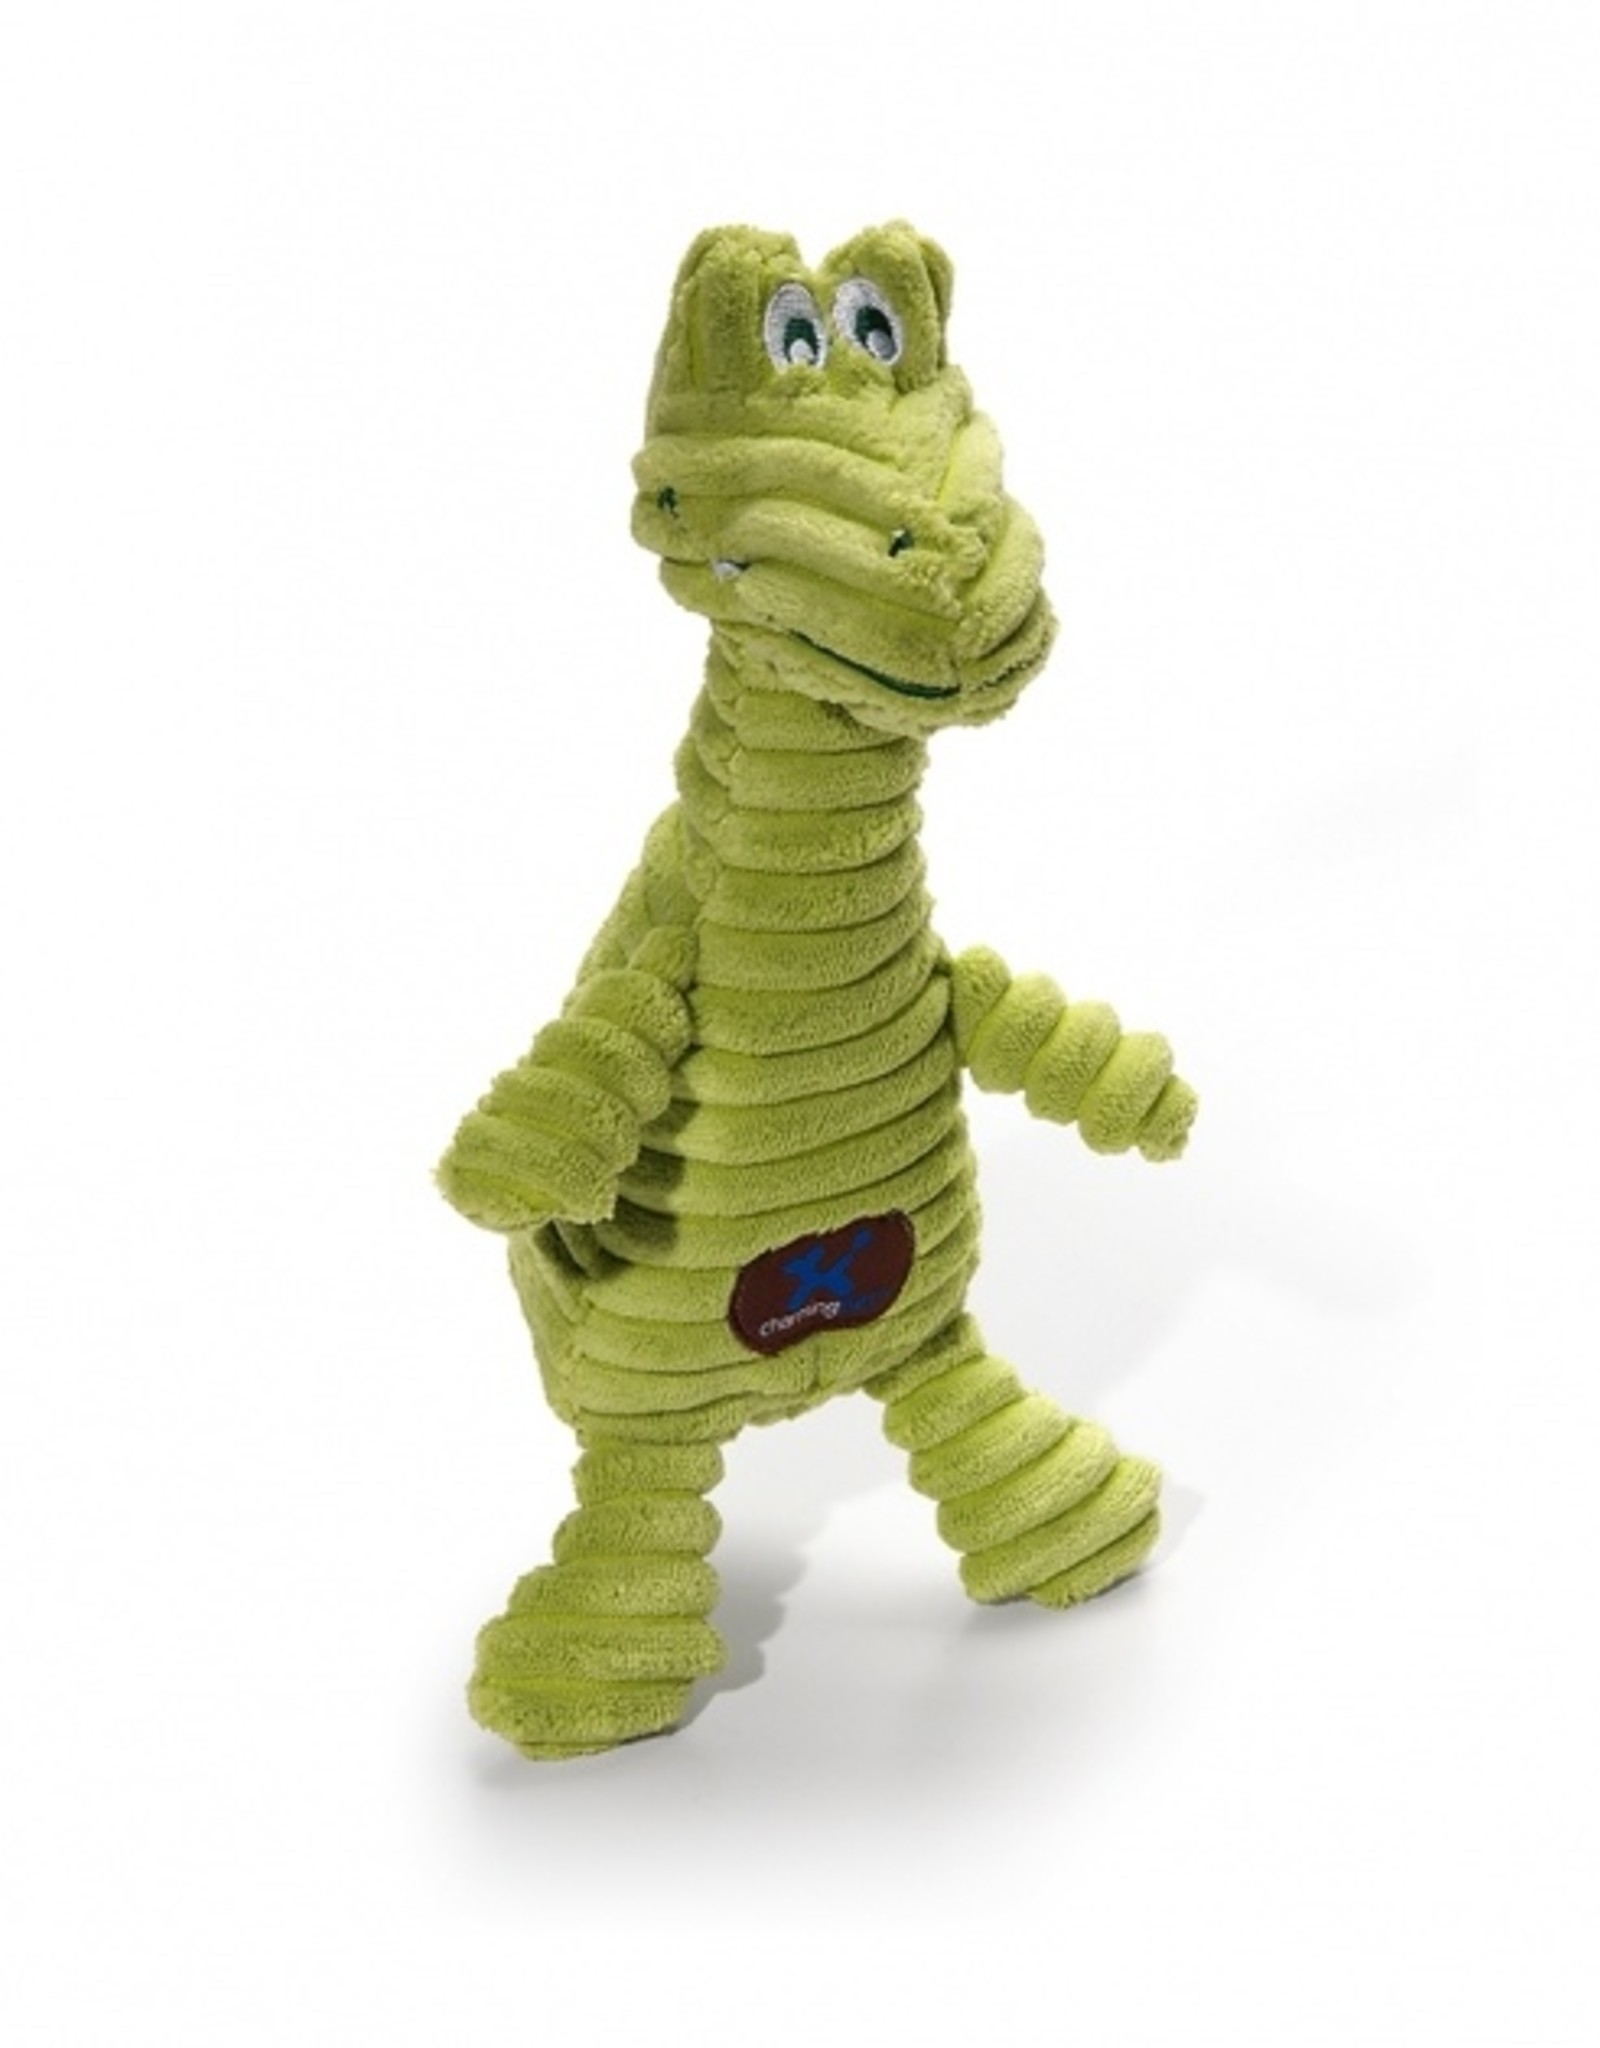 CHARMING PET PRODUCTS CHARMING PET SQUEAKIN SQUIGGLES GATOR